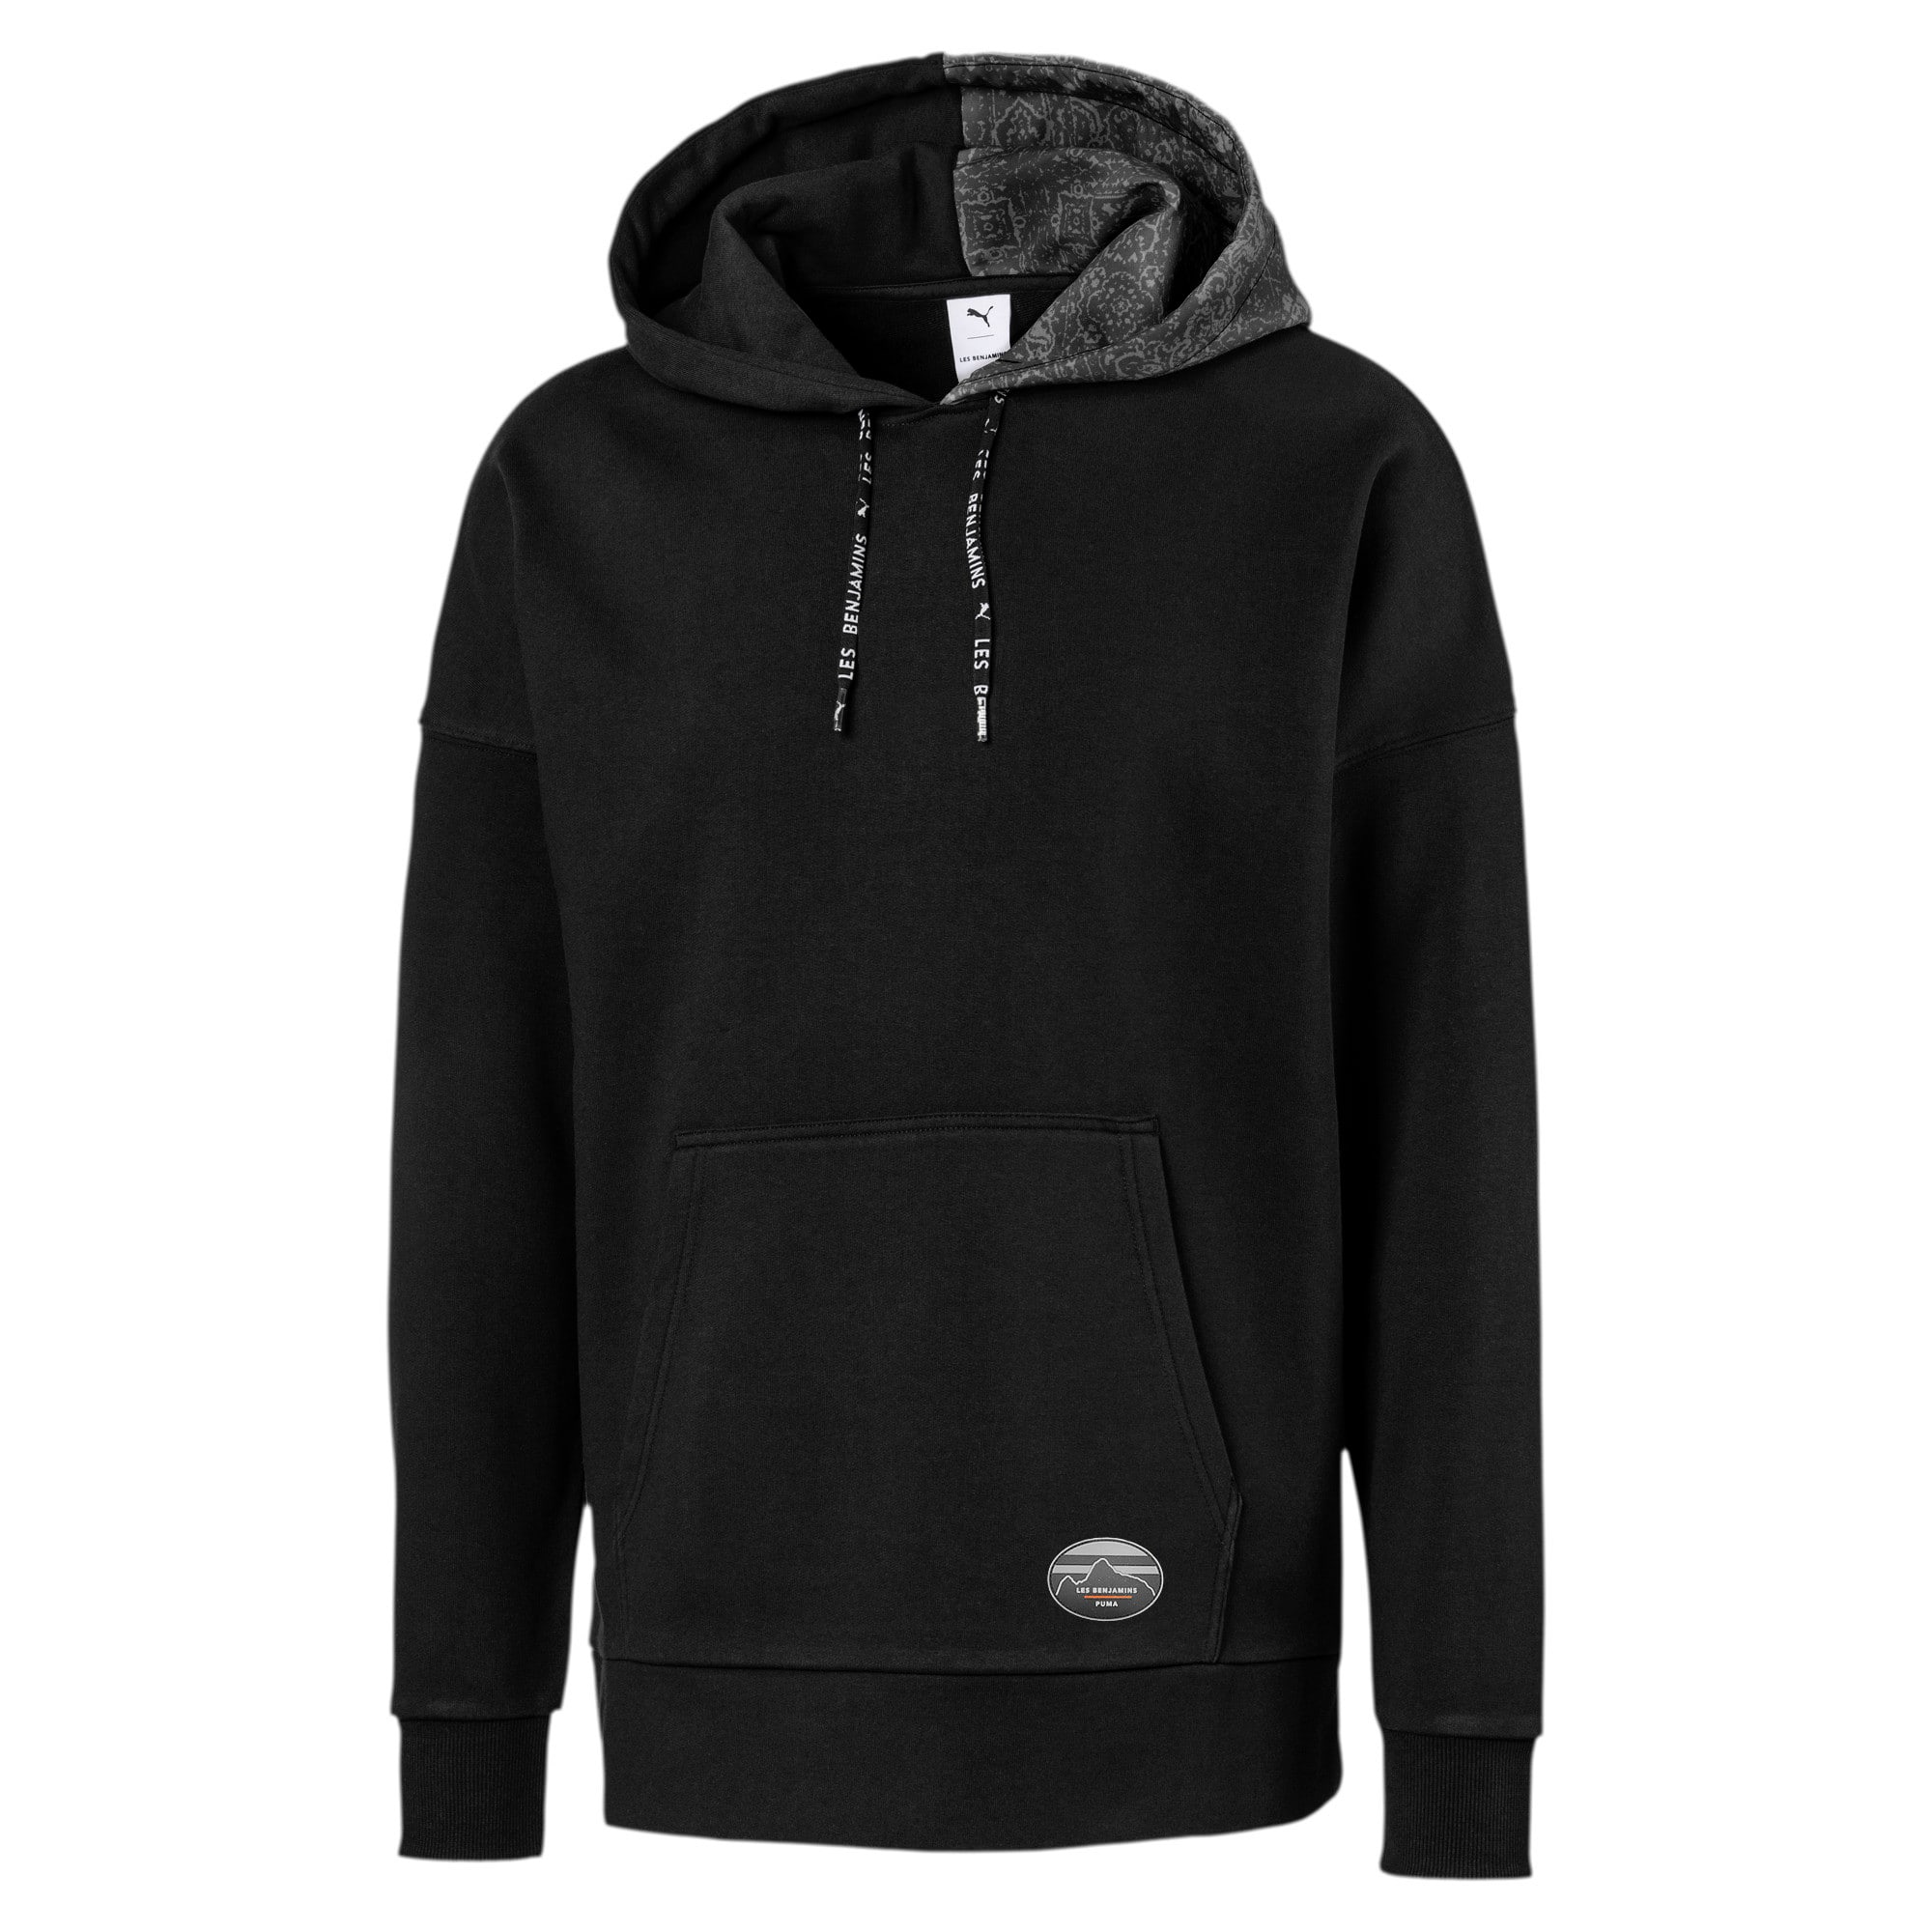 Thumbnail 1 of PUMA x LES BENJAMINS Men's Hoodie, Puma Black, medium